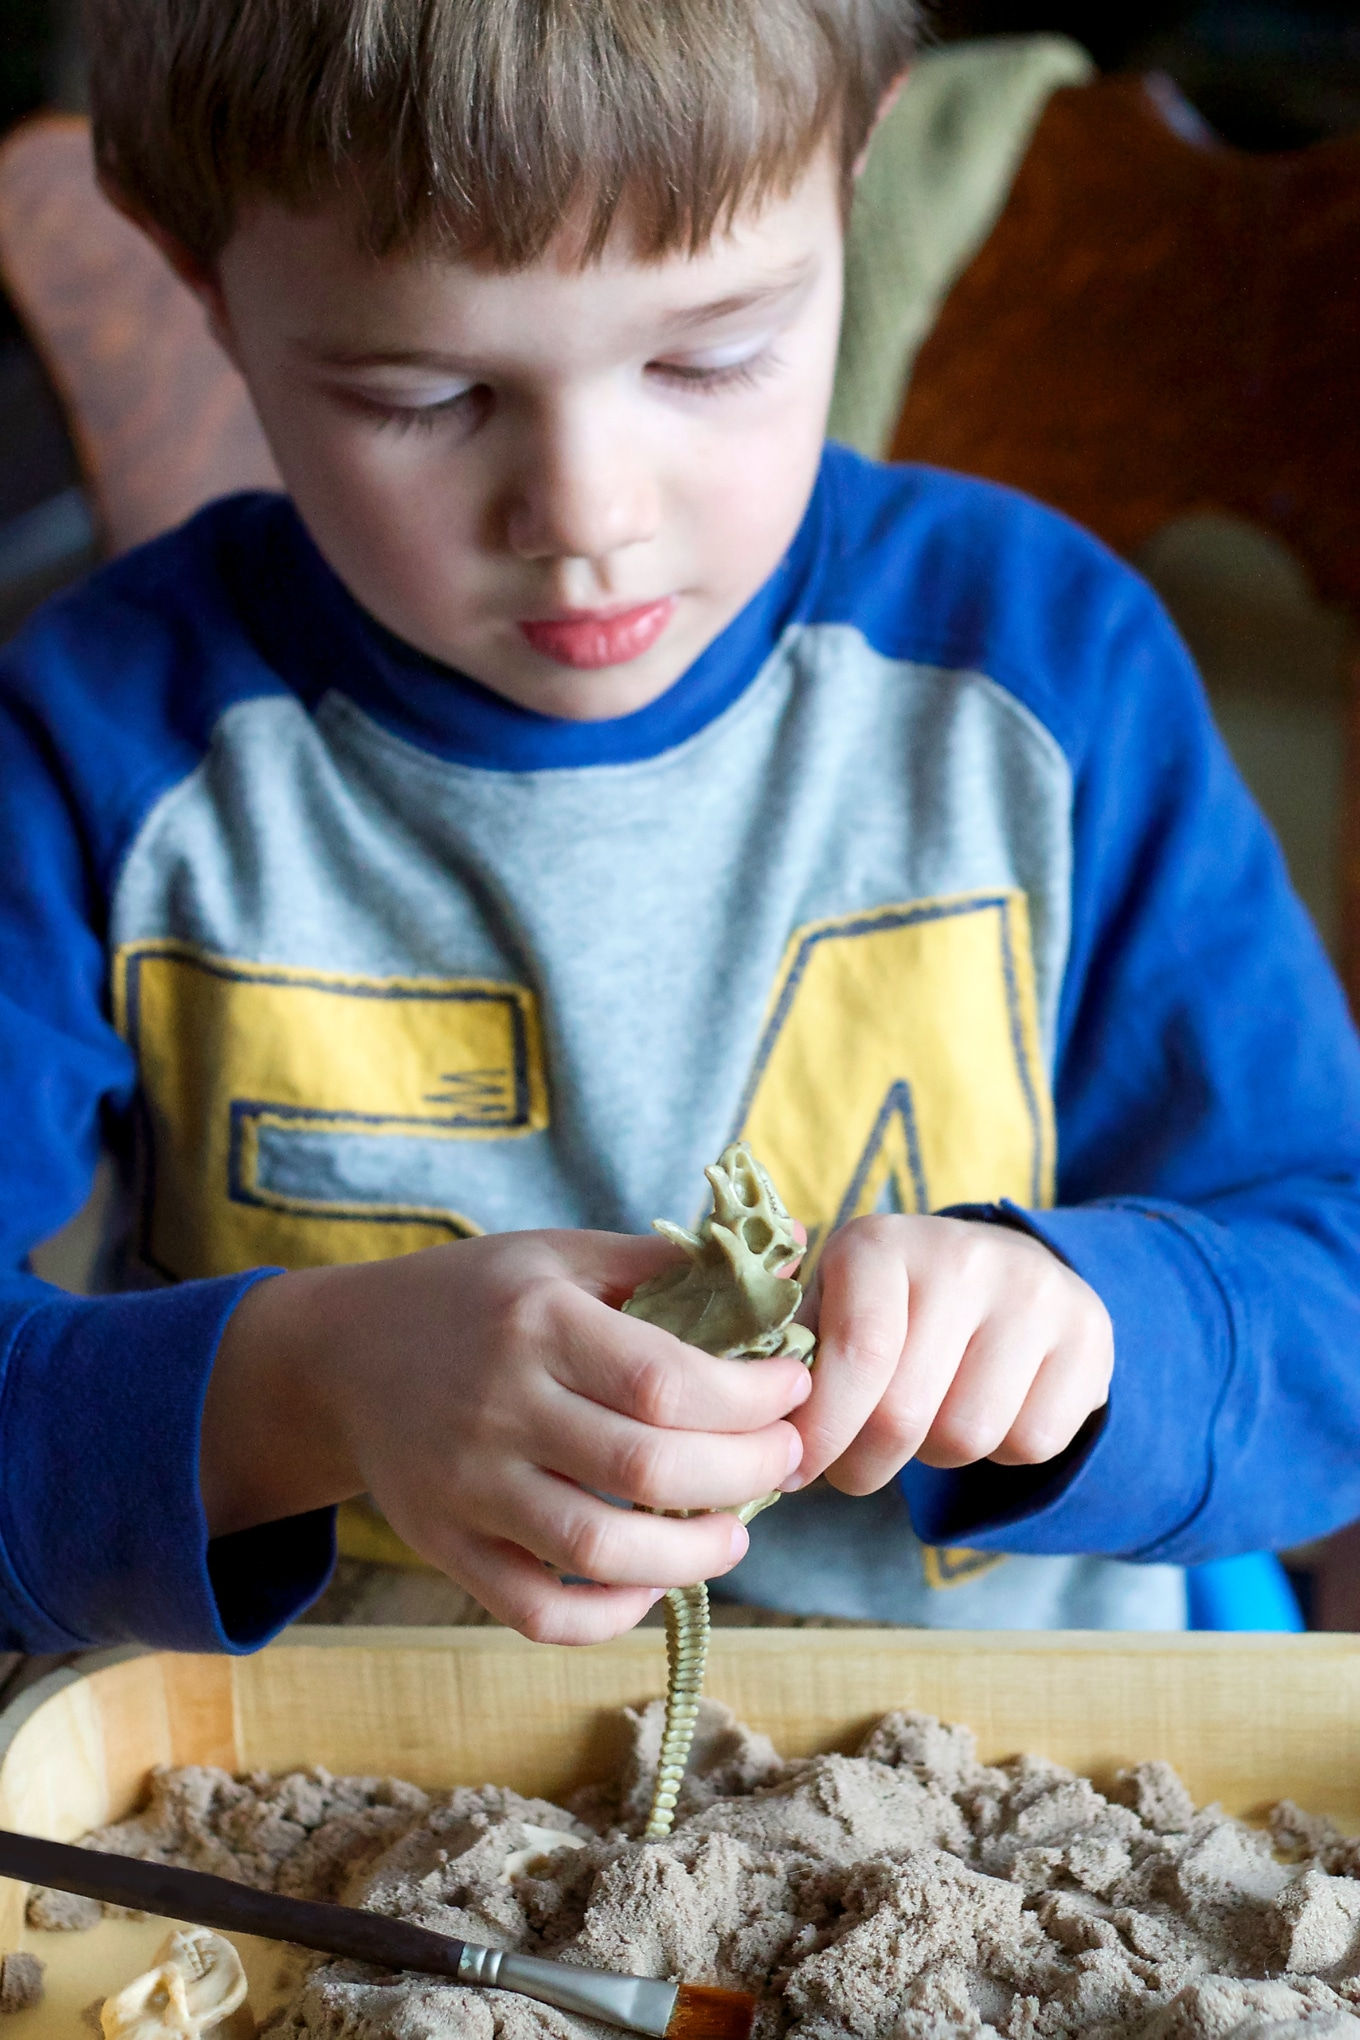 Preschooler Digging for Dinosaur Bones